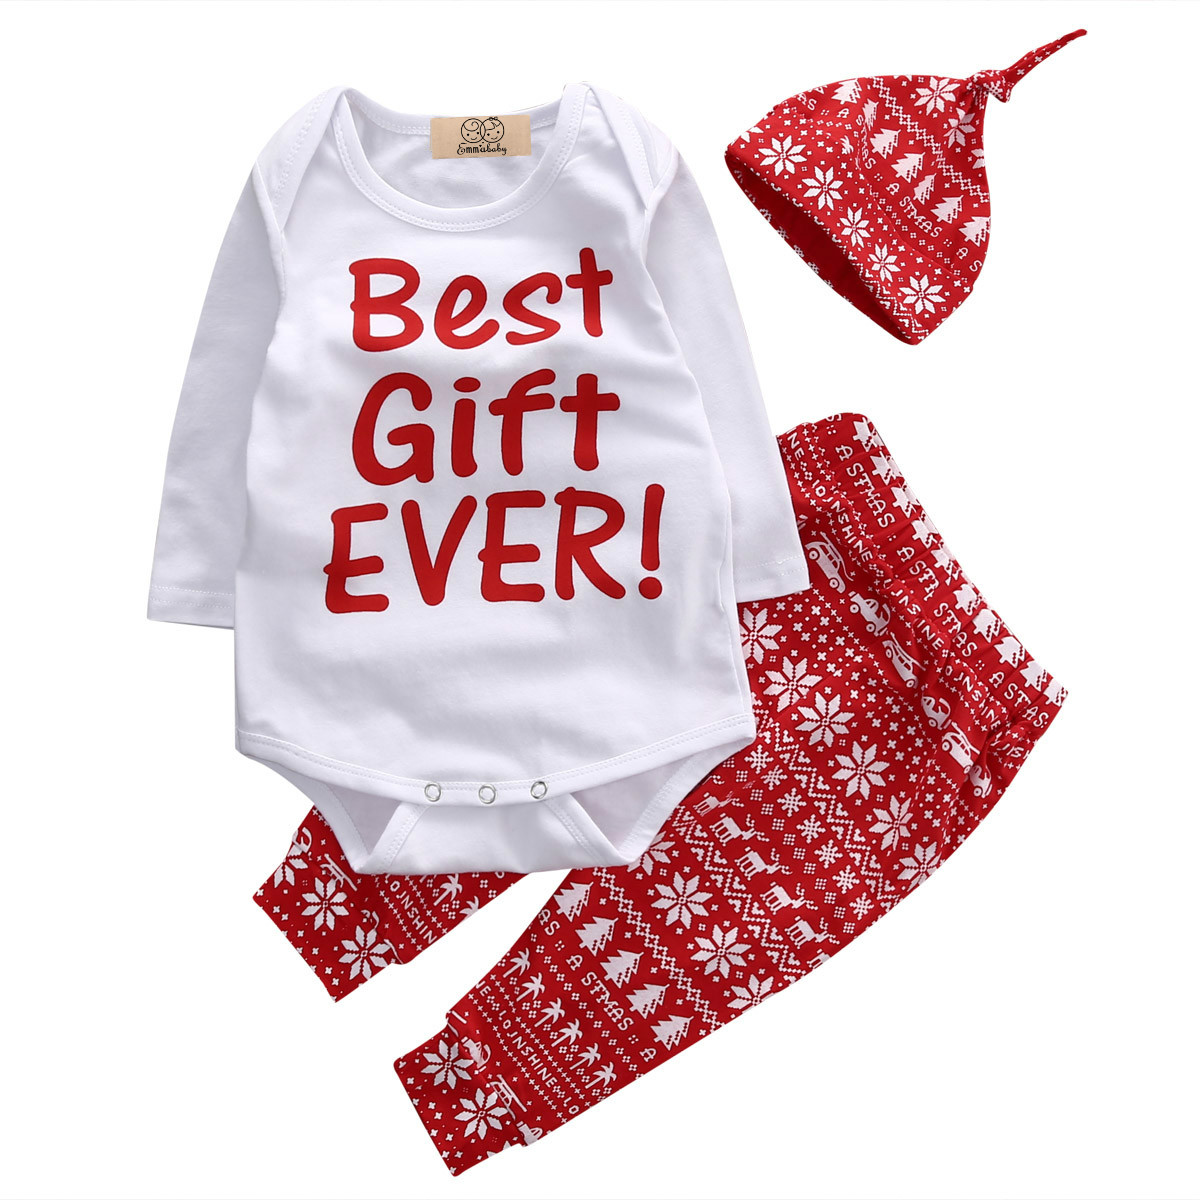 Newborn Baby Boy Girls Hot Sale Christmas Long Sleeve Bodysuit Tops +Long Print Pants Hat Brief Casual 3PCS Outfits Set Clothes